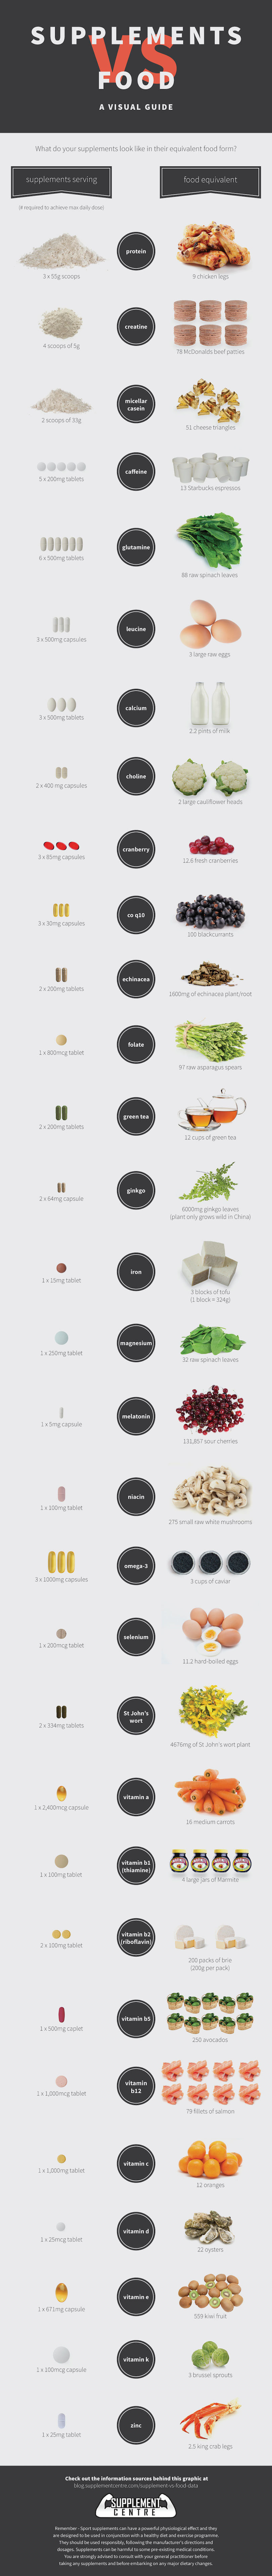 supplements and mineral rich foods